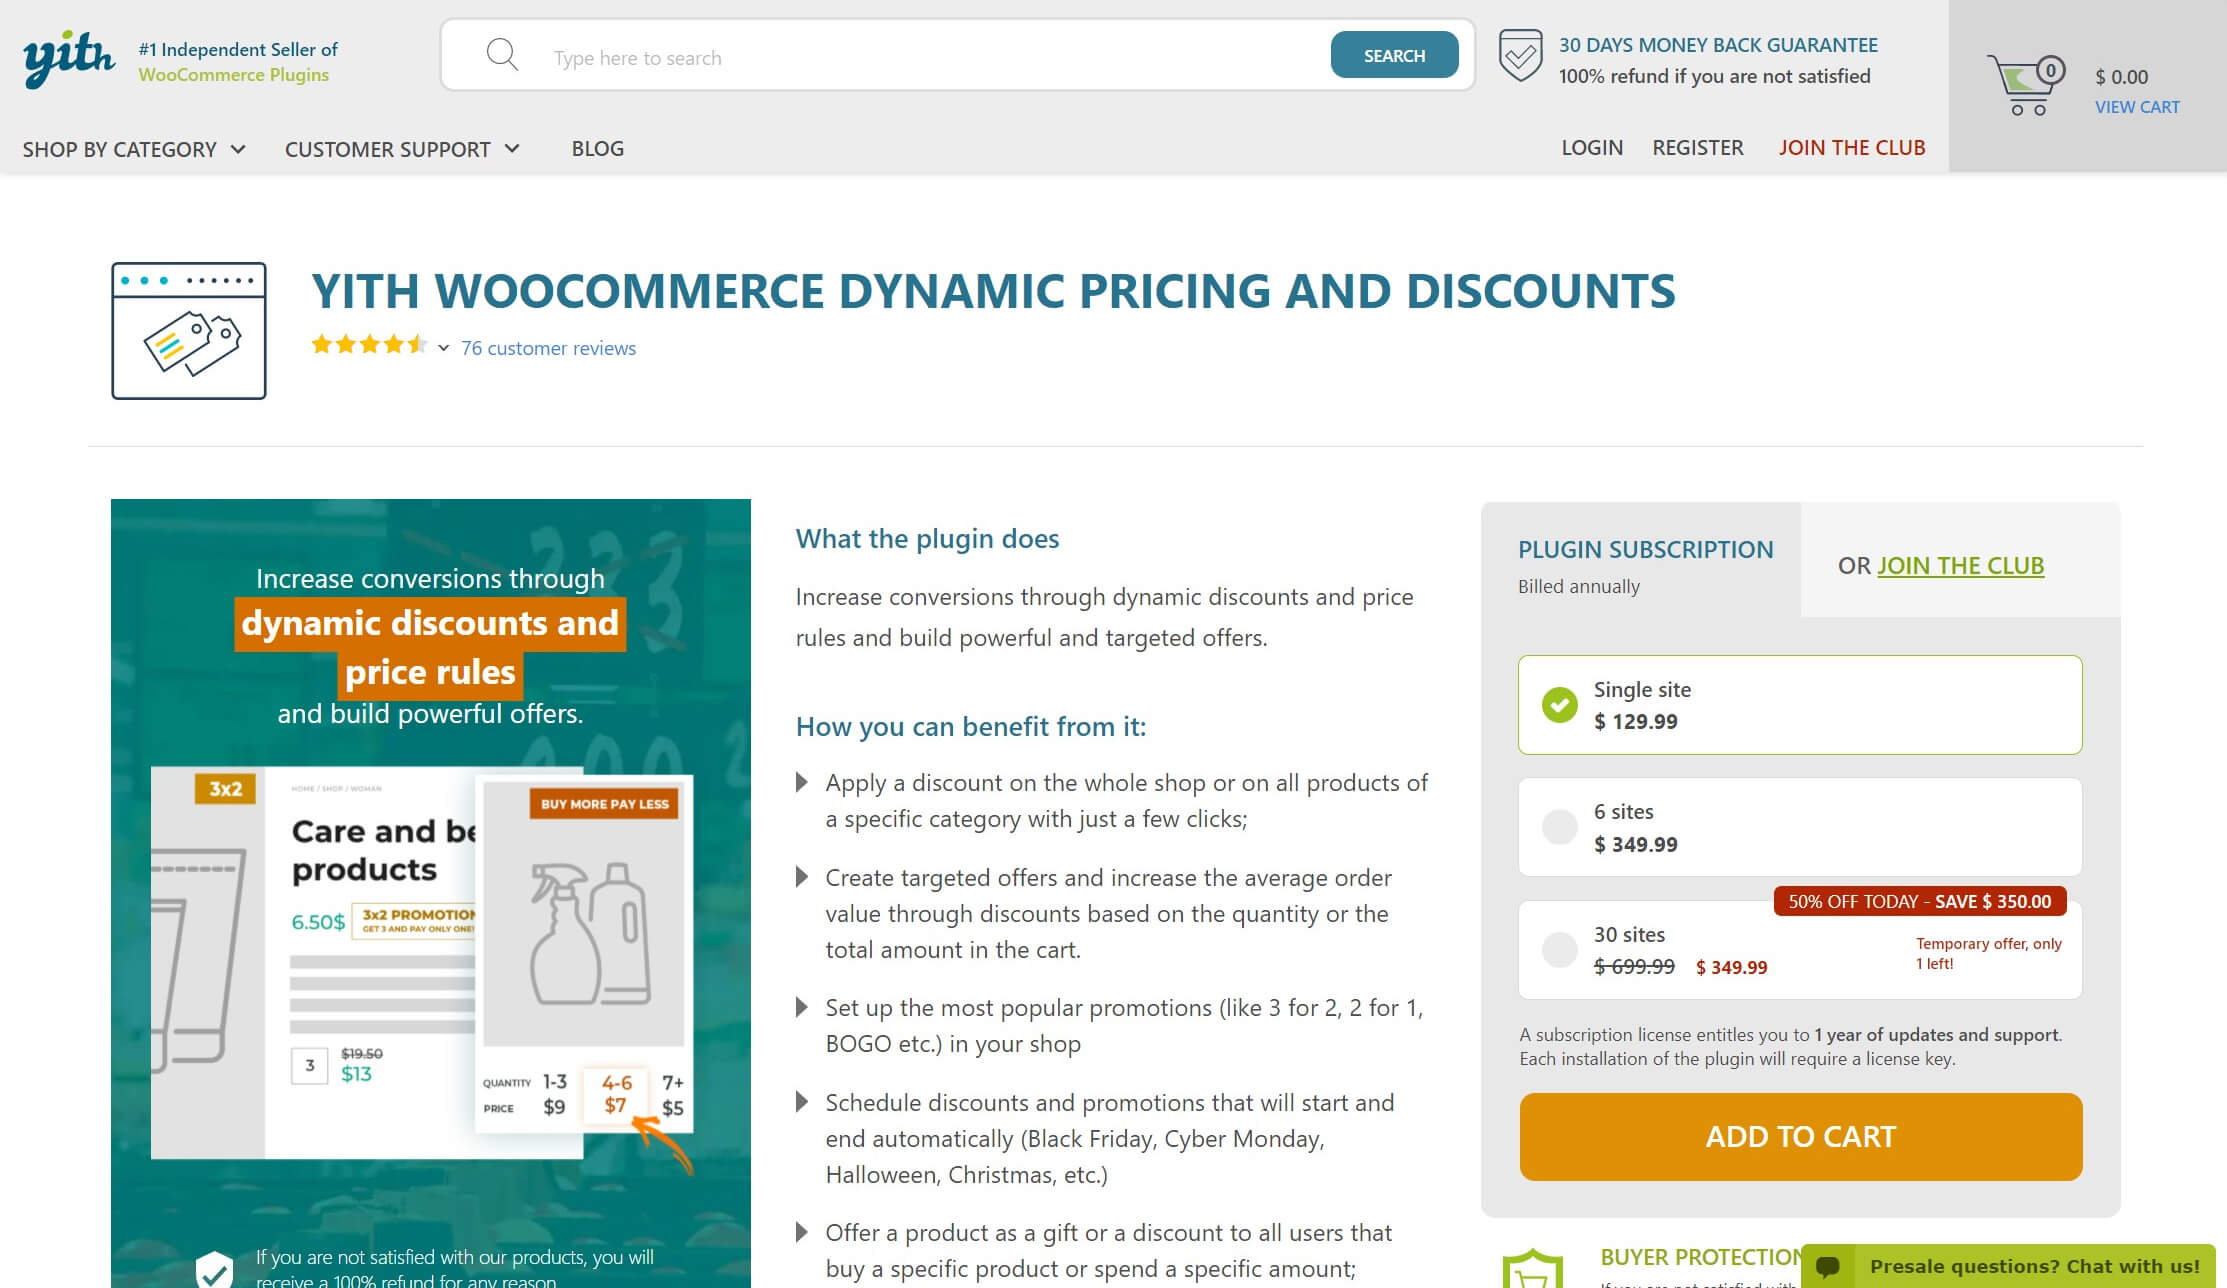 Le plugin YITH WooCommerce Dynamic Pricing and Discounts.